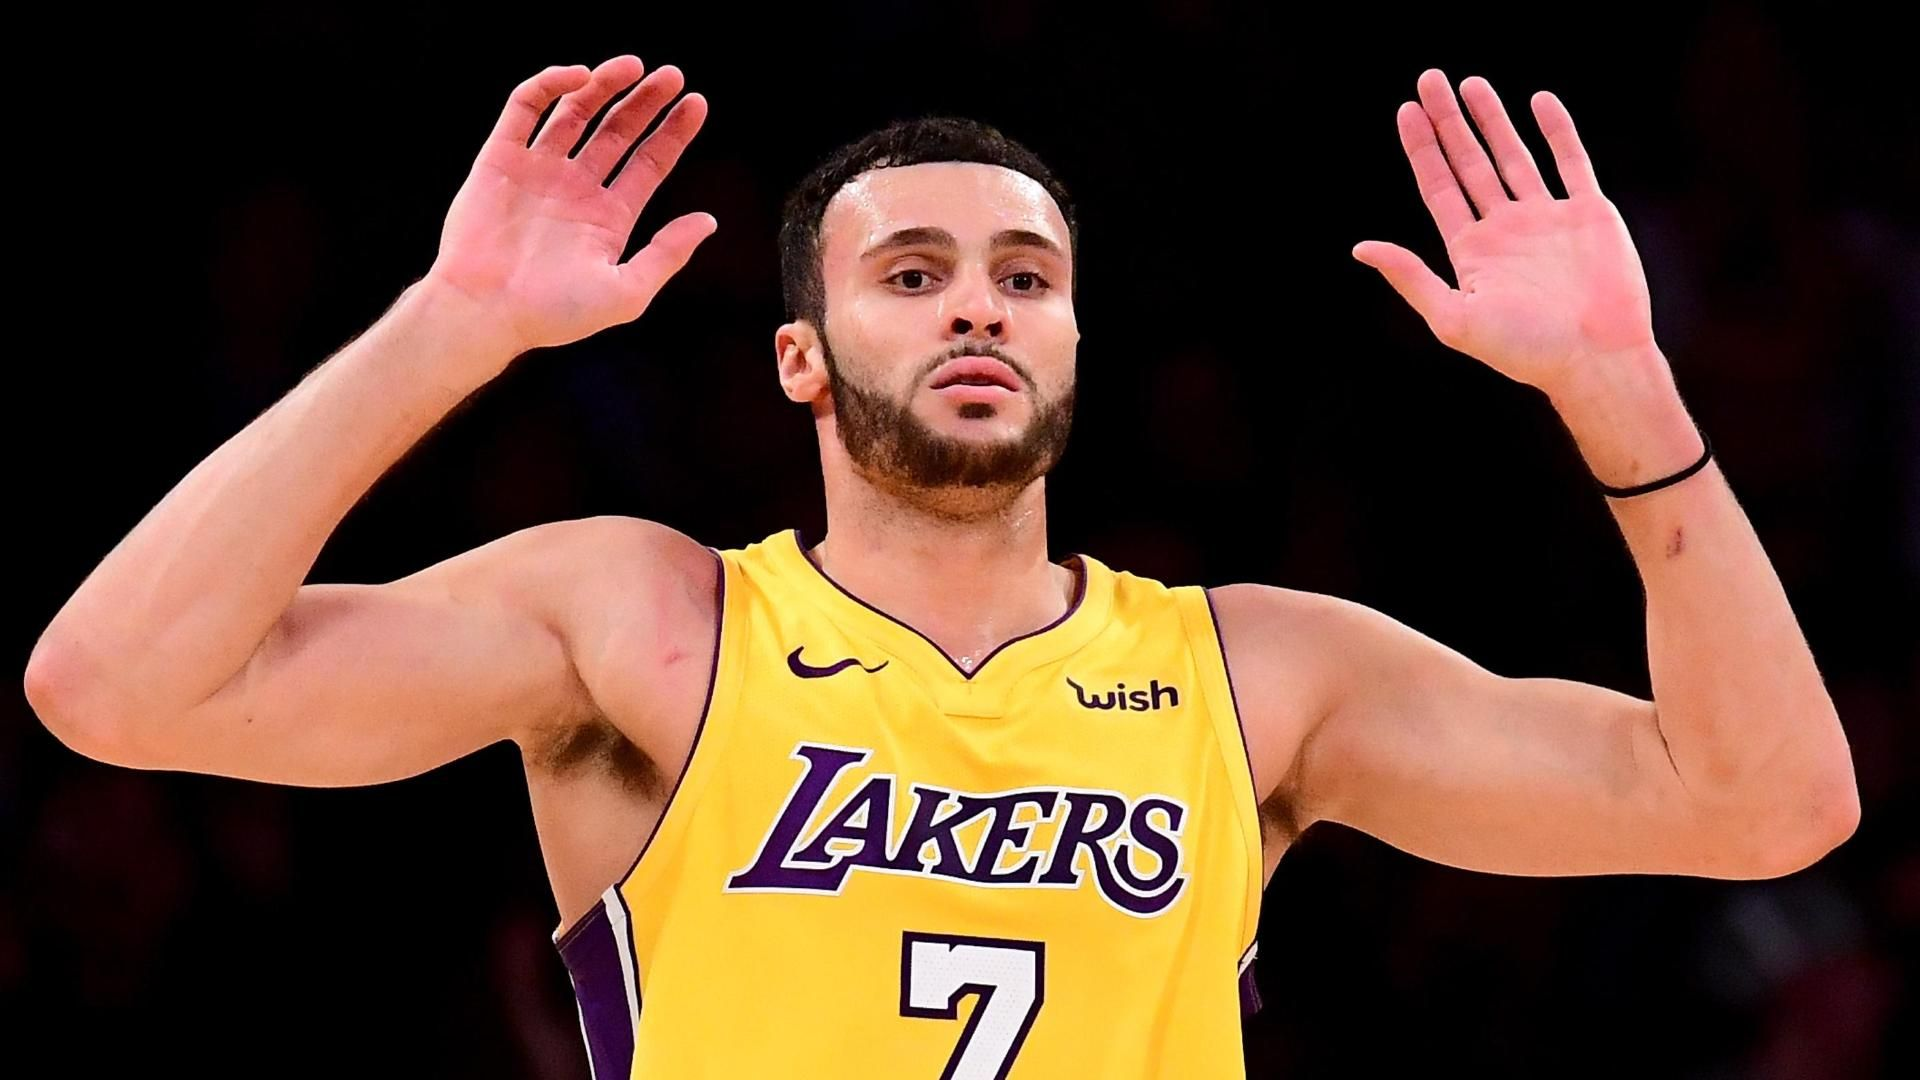 Nance Jr. puts on a show with huge steal and slam